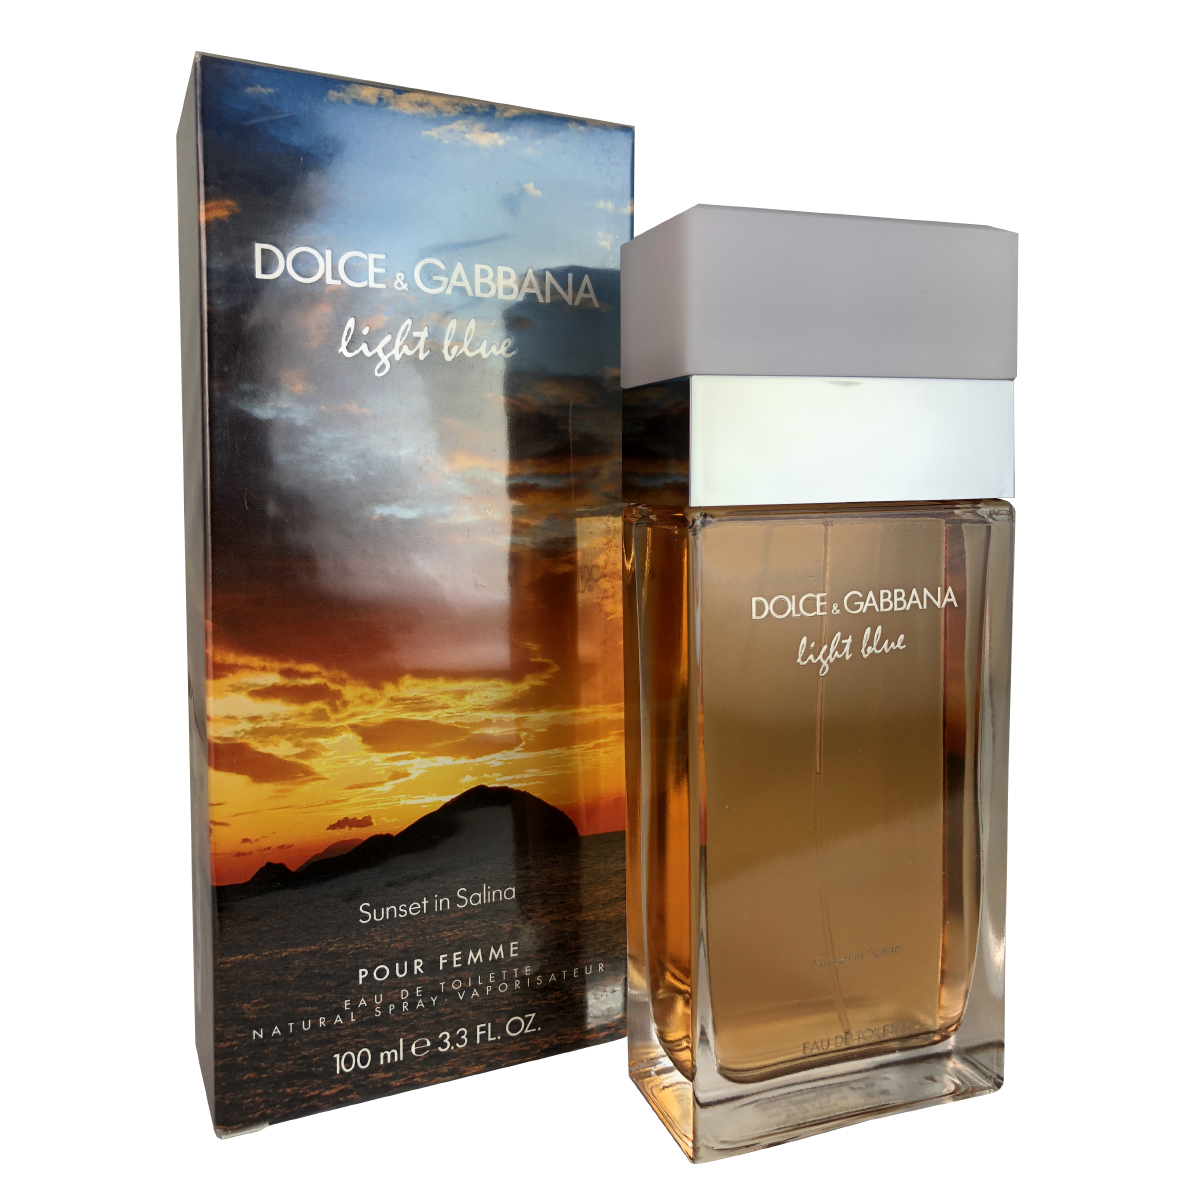 677eb0da4572d Details about Dolce   Gabanna Sunset In Salina Light Blue - Women 3.3oz Eau  De Toilette Spray